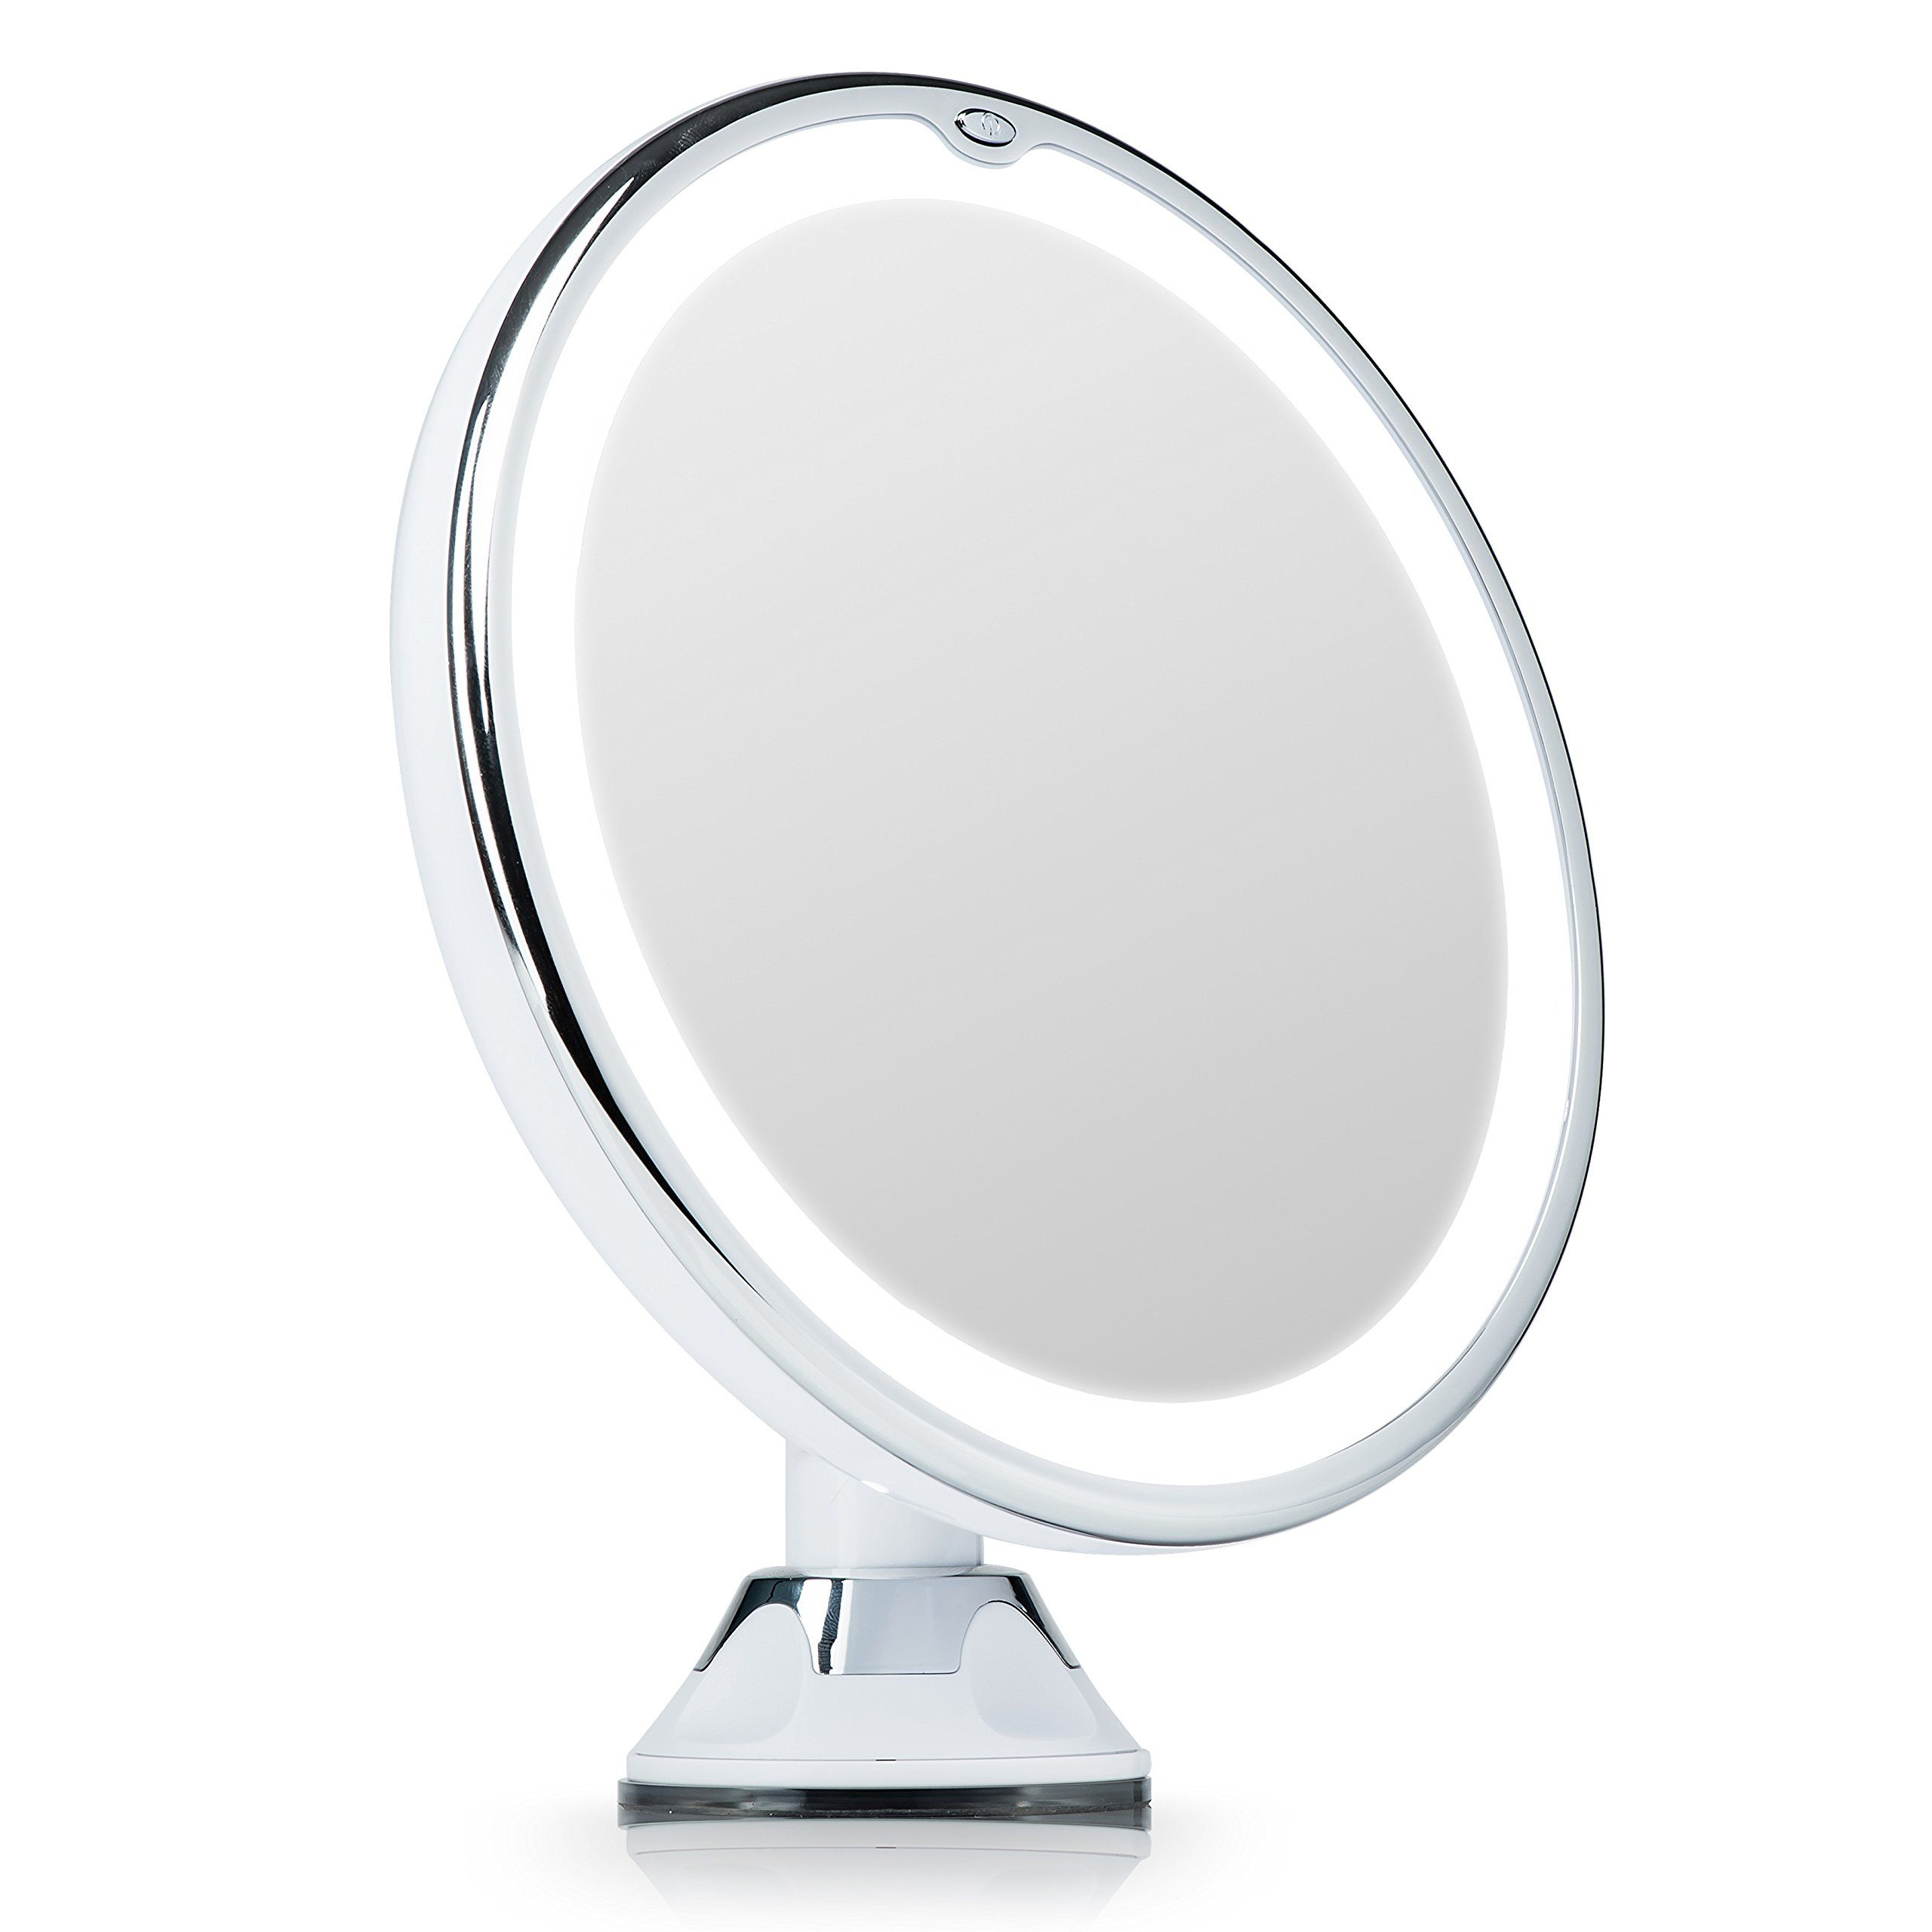 Fancii 7X Magnifying Lighted Vanity Makeup Mirror with 20